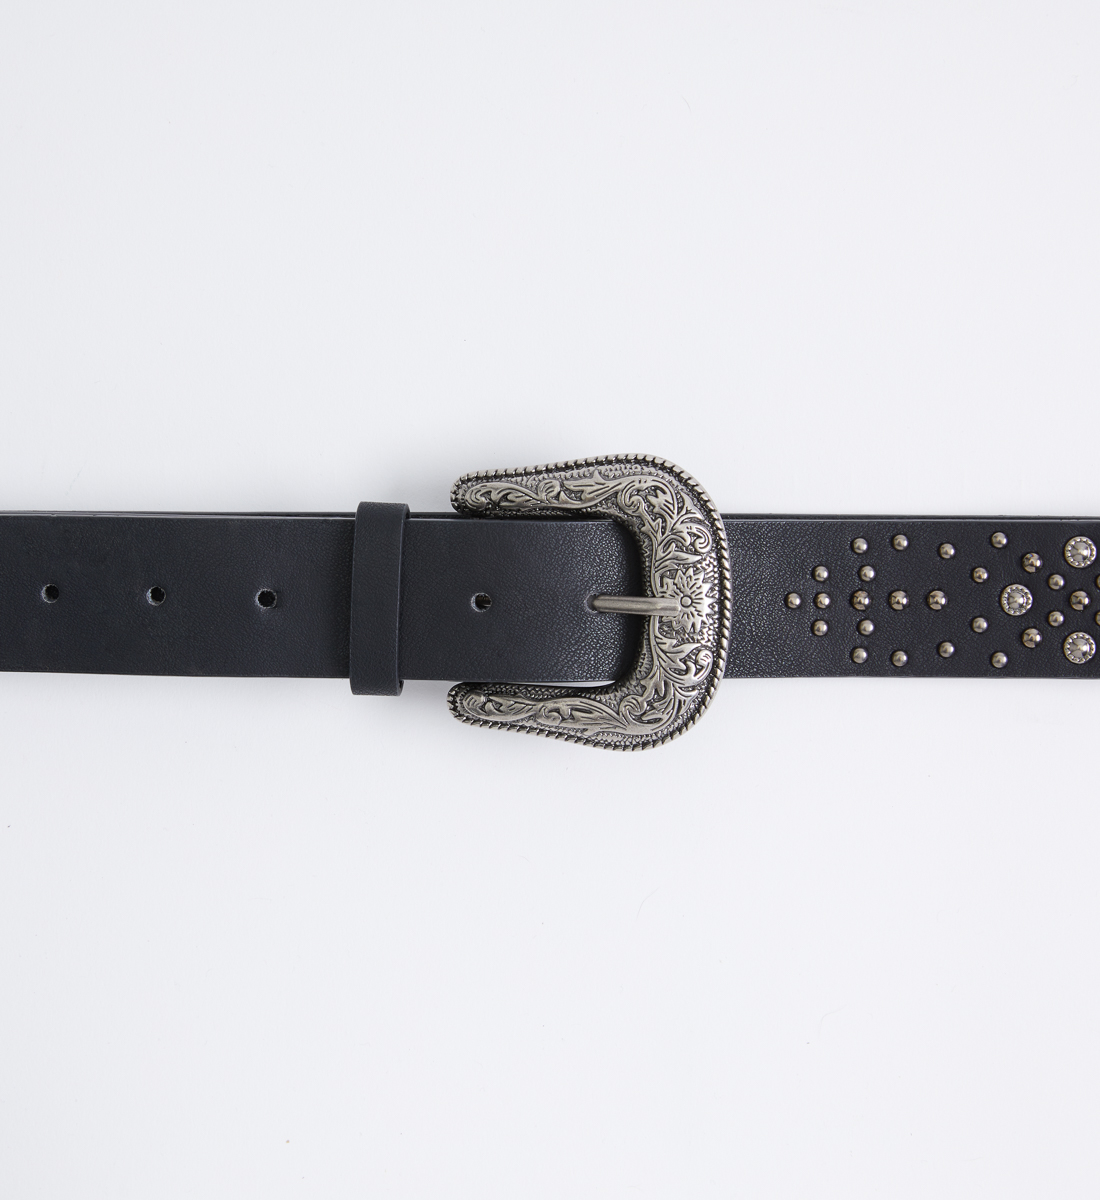 Western Studded Womens Belt Alt Image 1